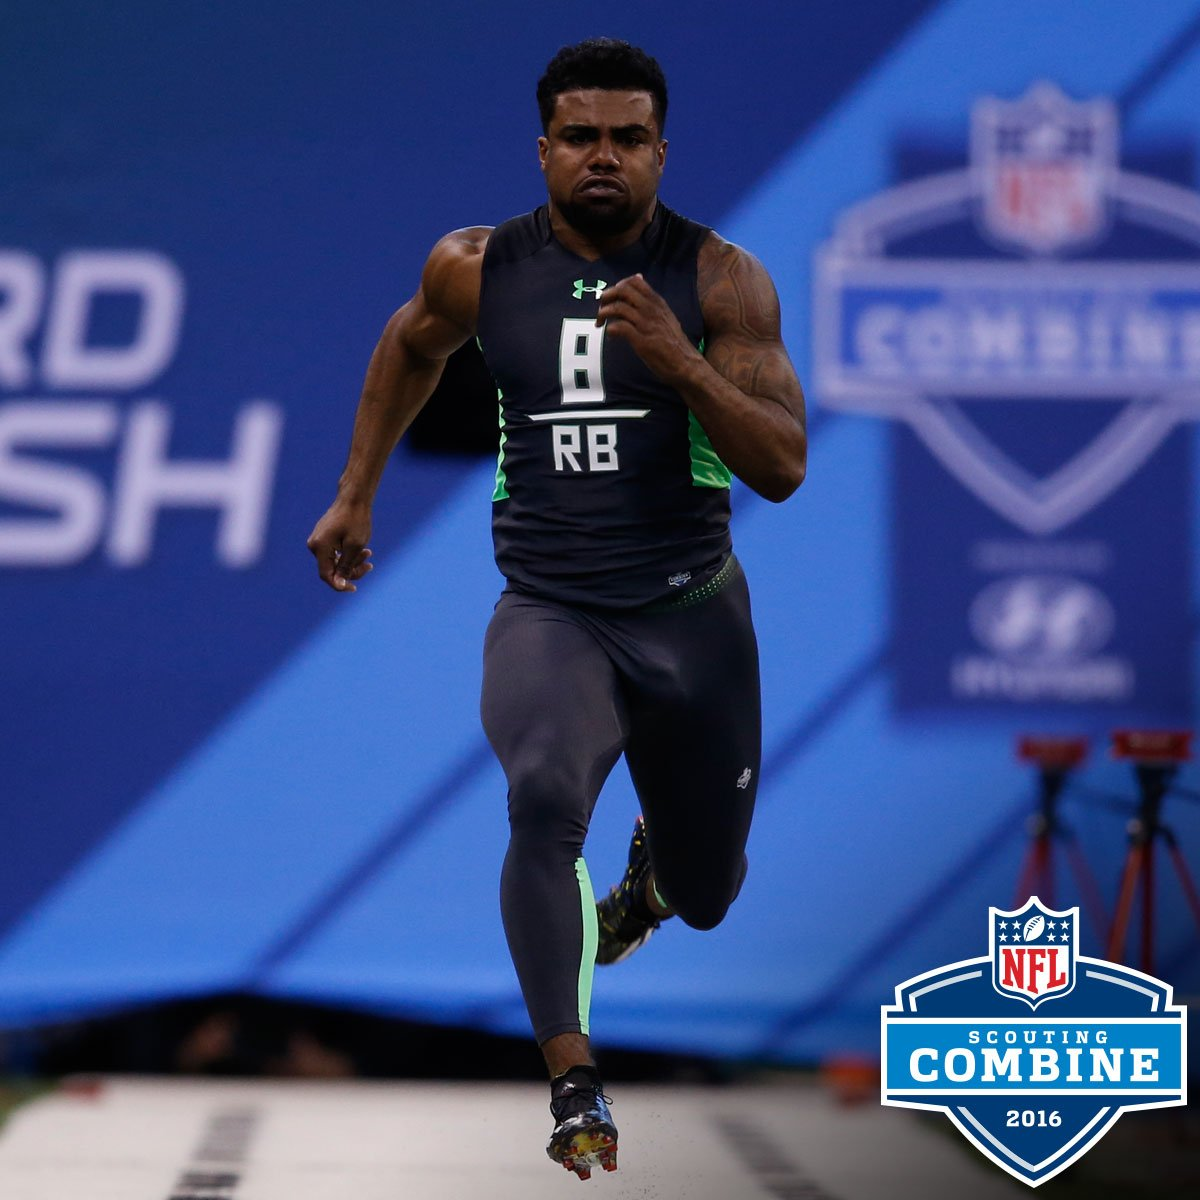 Nfl: It's Running Back Day At The NFL Combine